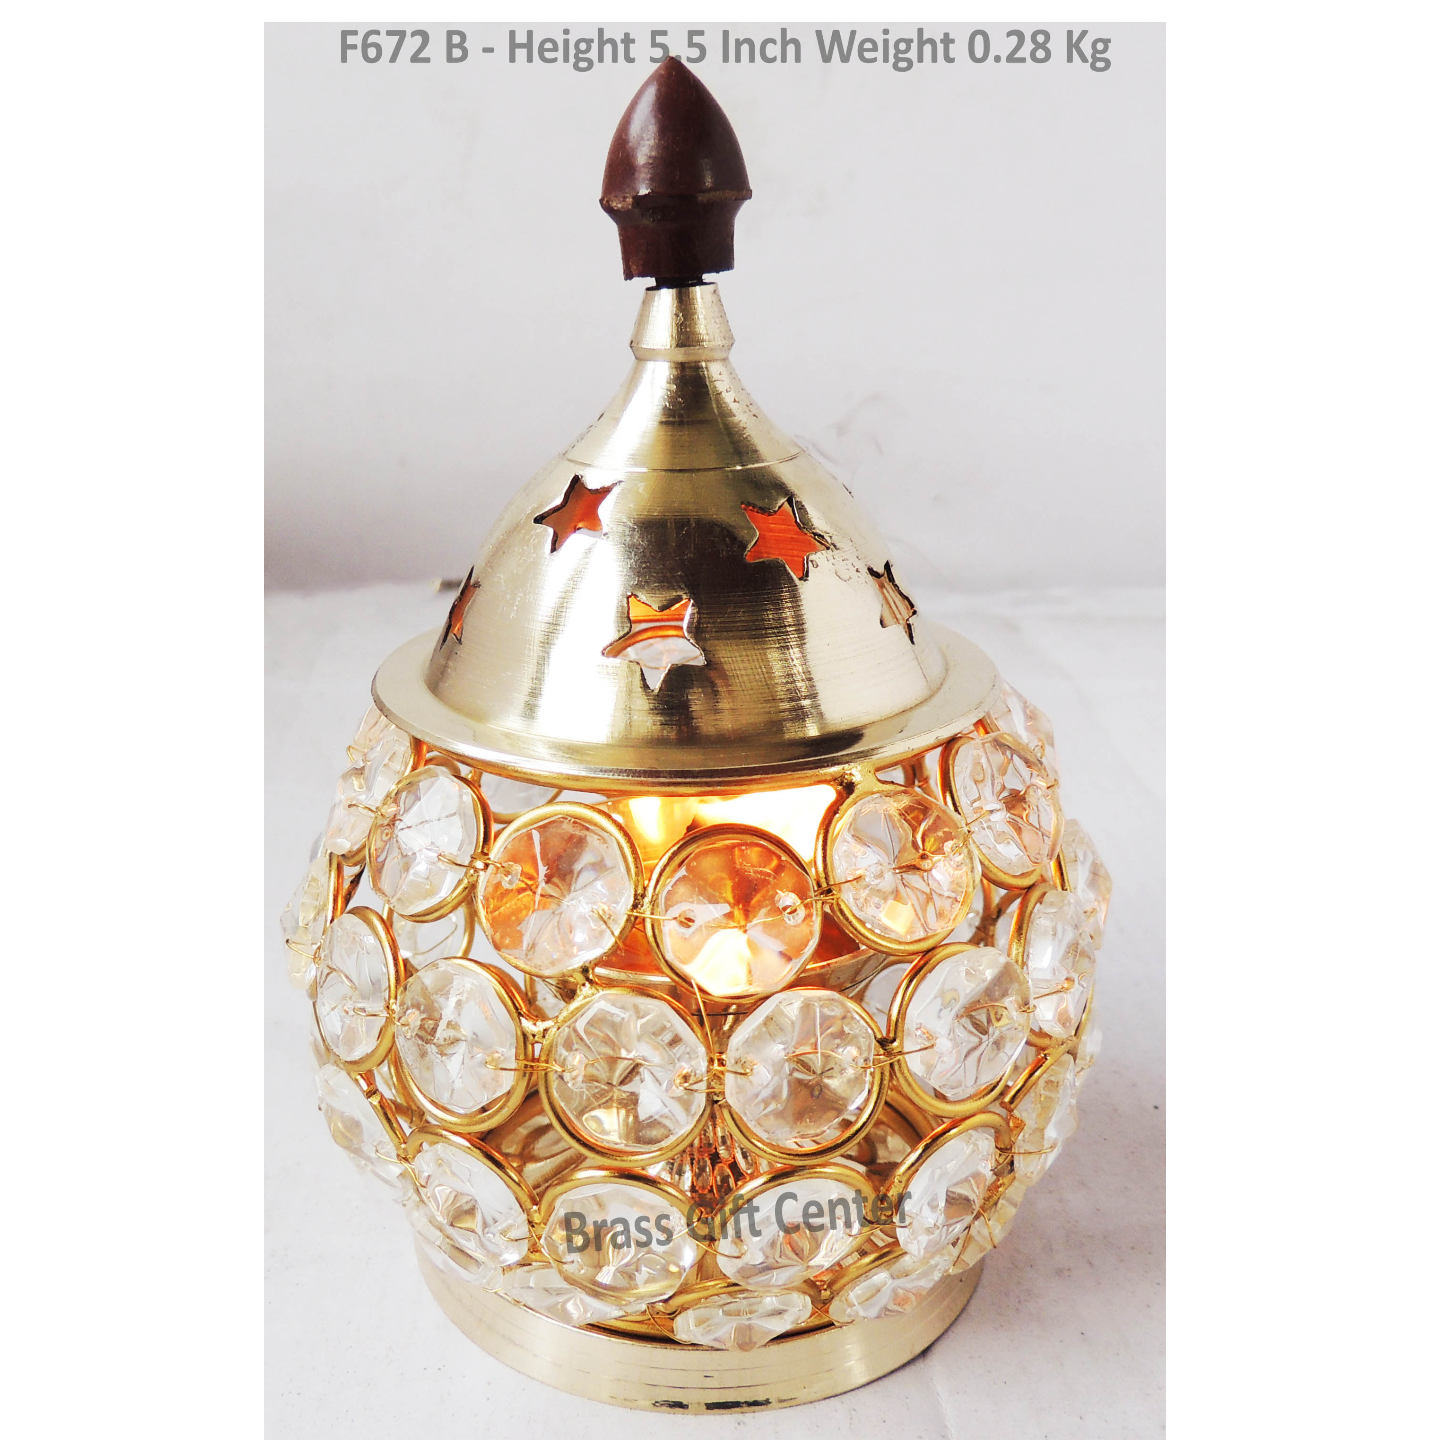 Brass Oil Lamp Deepak With Crystal Beads Height 5.5 Inch (F672 B)